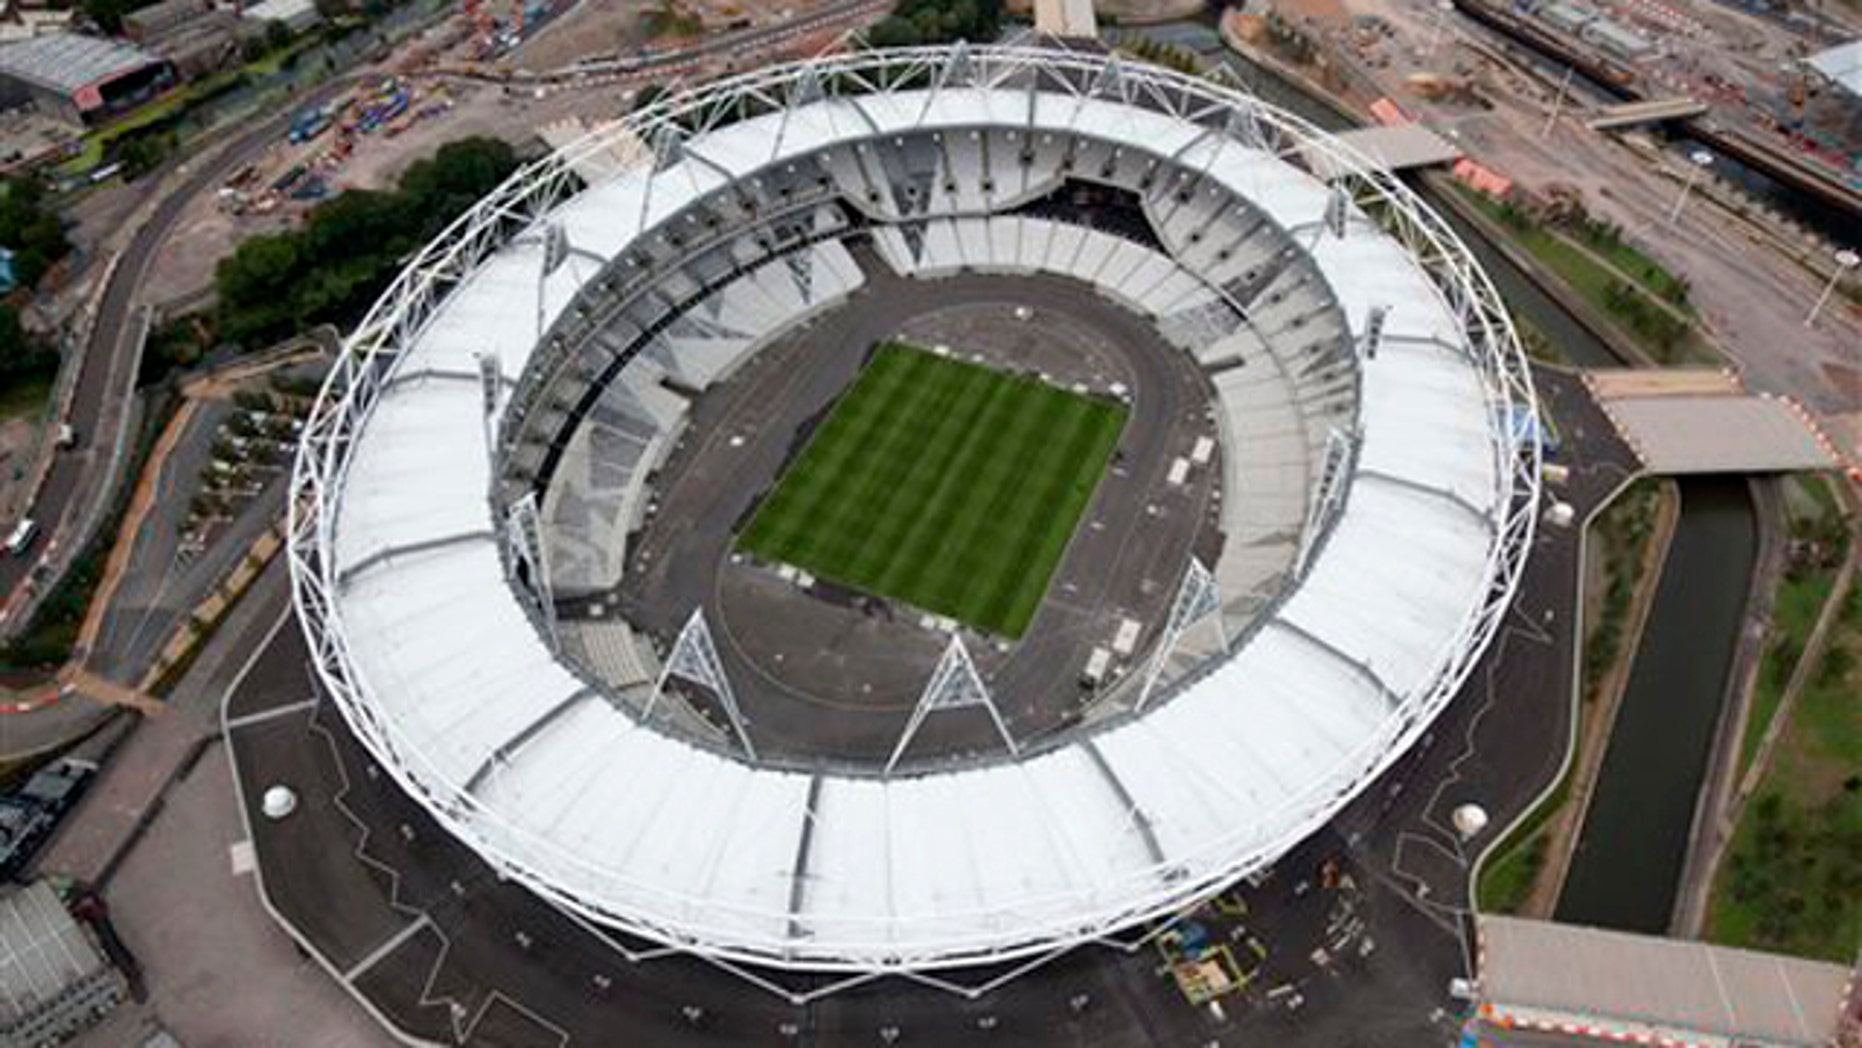 In this photo taken July 14, 2011 and made available by the Olympic Delivery Authority, an aerial view of the Olympic stadium is seen at the Olympic Park, London. With exactly a year to go until the start of the London 2012 Games, the Olympic Delivery Authority, ODA, has announced that the Aquatics Center is now complete, the last of the six main permanent Olympic Park venues to finish construction. (AP Photo/Olympic Delivery Authority, Anthony Charlton)  EDITORIAL USE ONLY